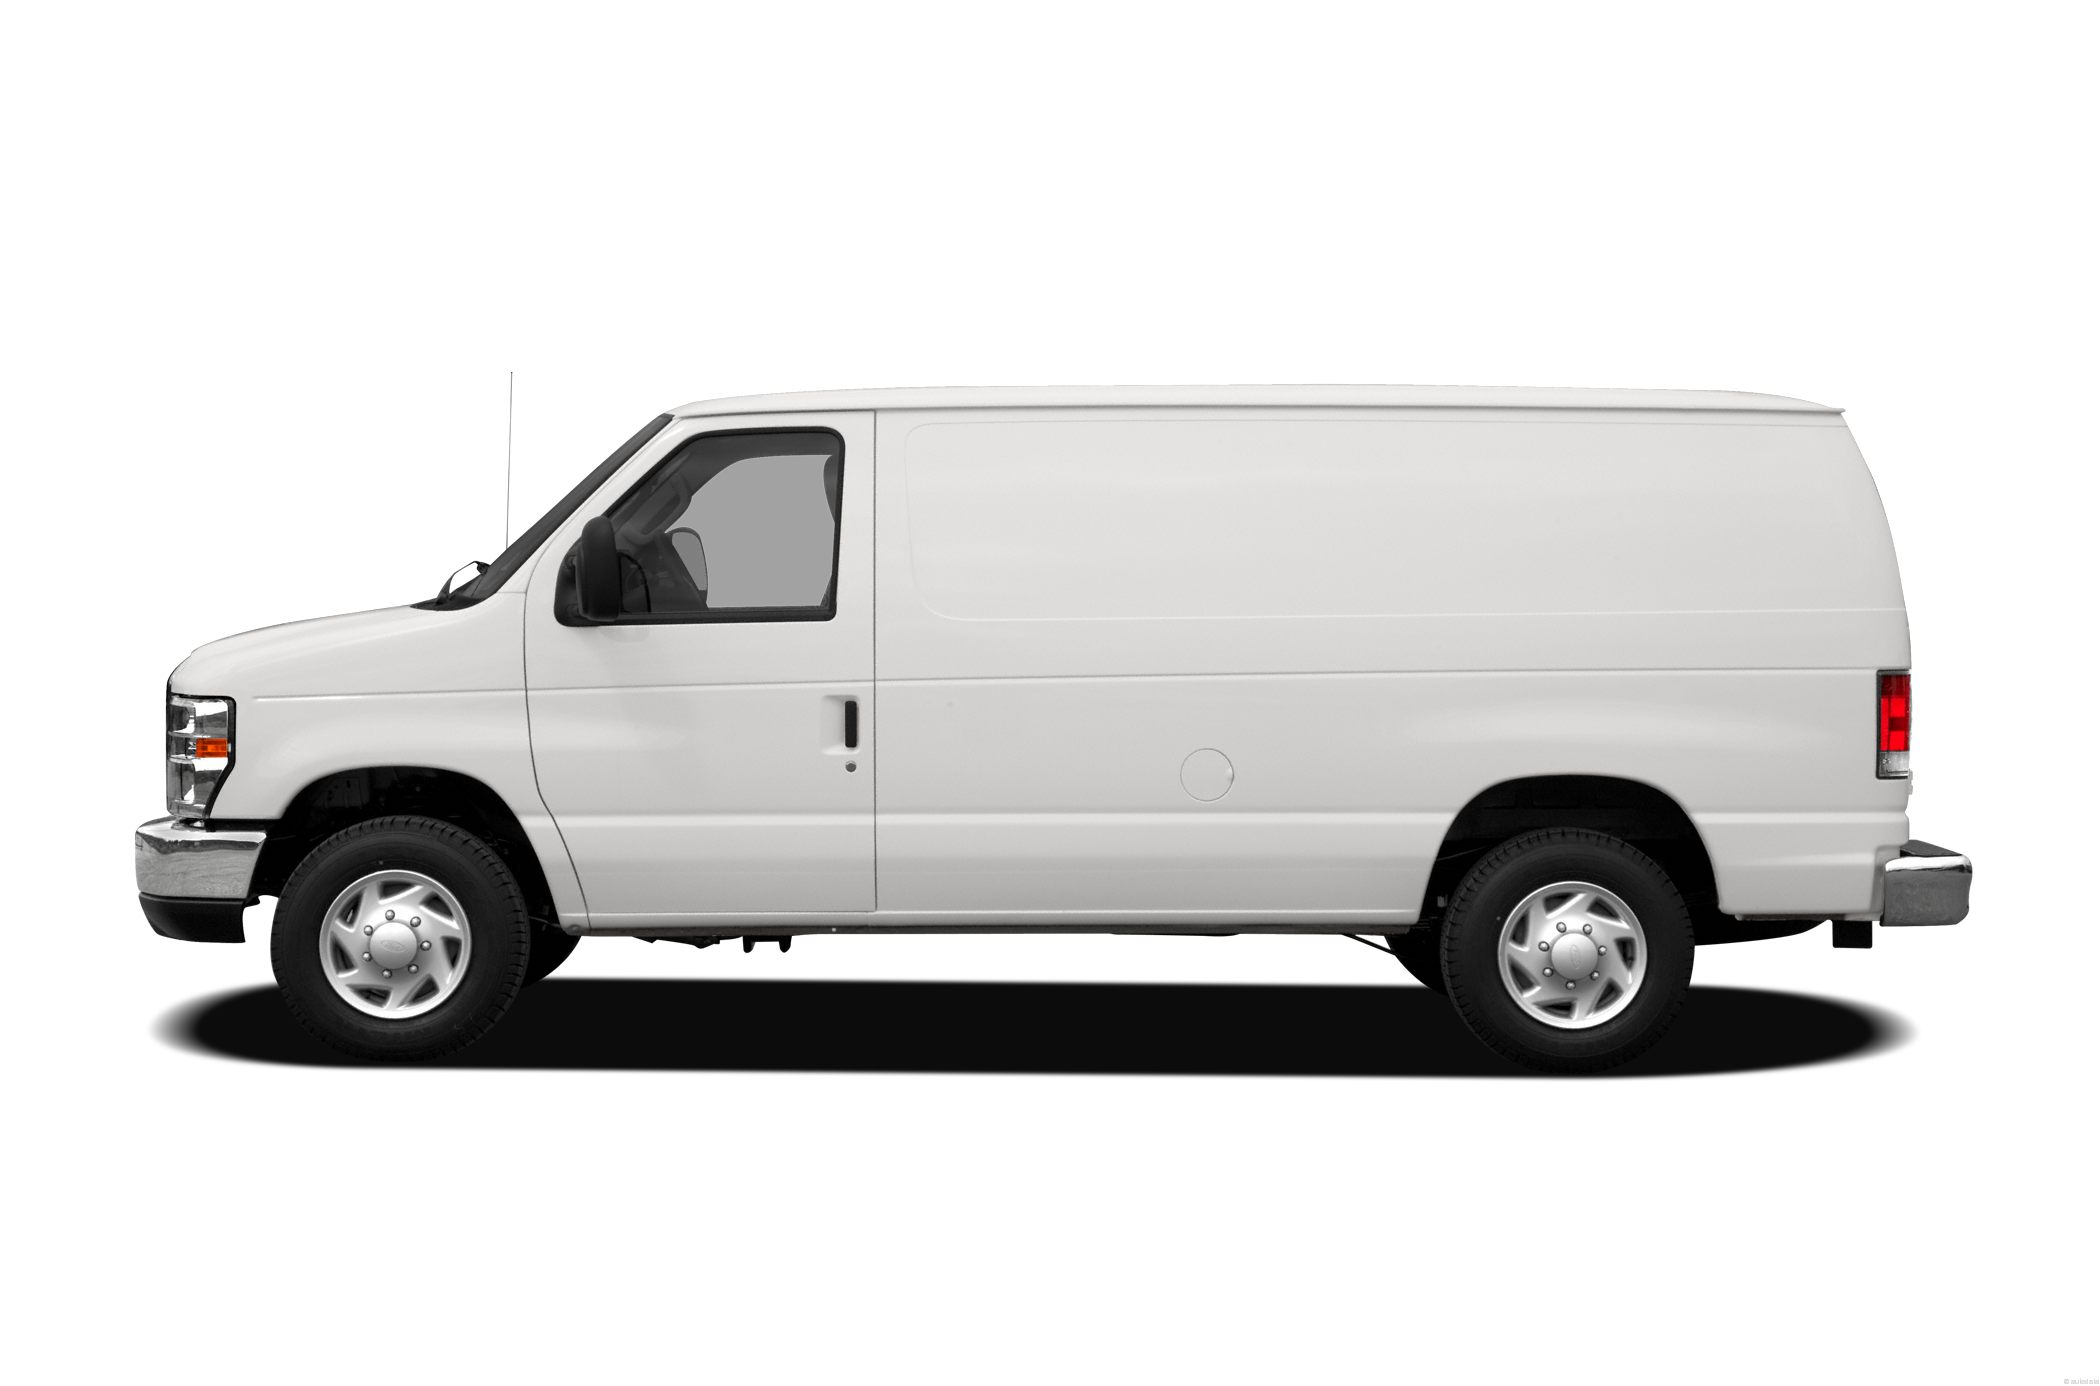 Ford E-series Van #15